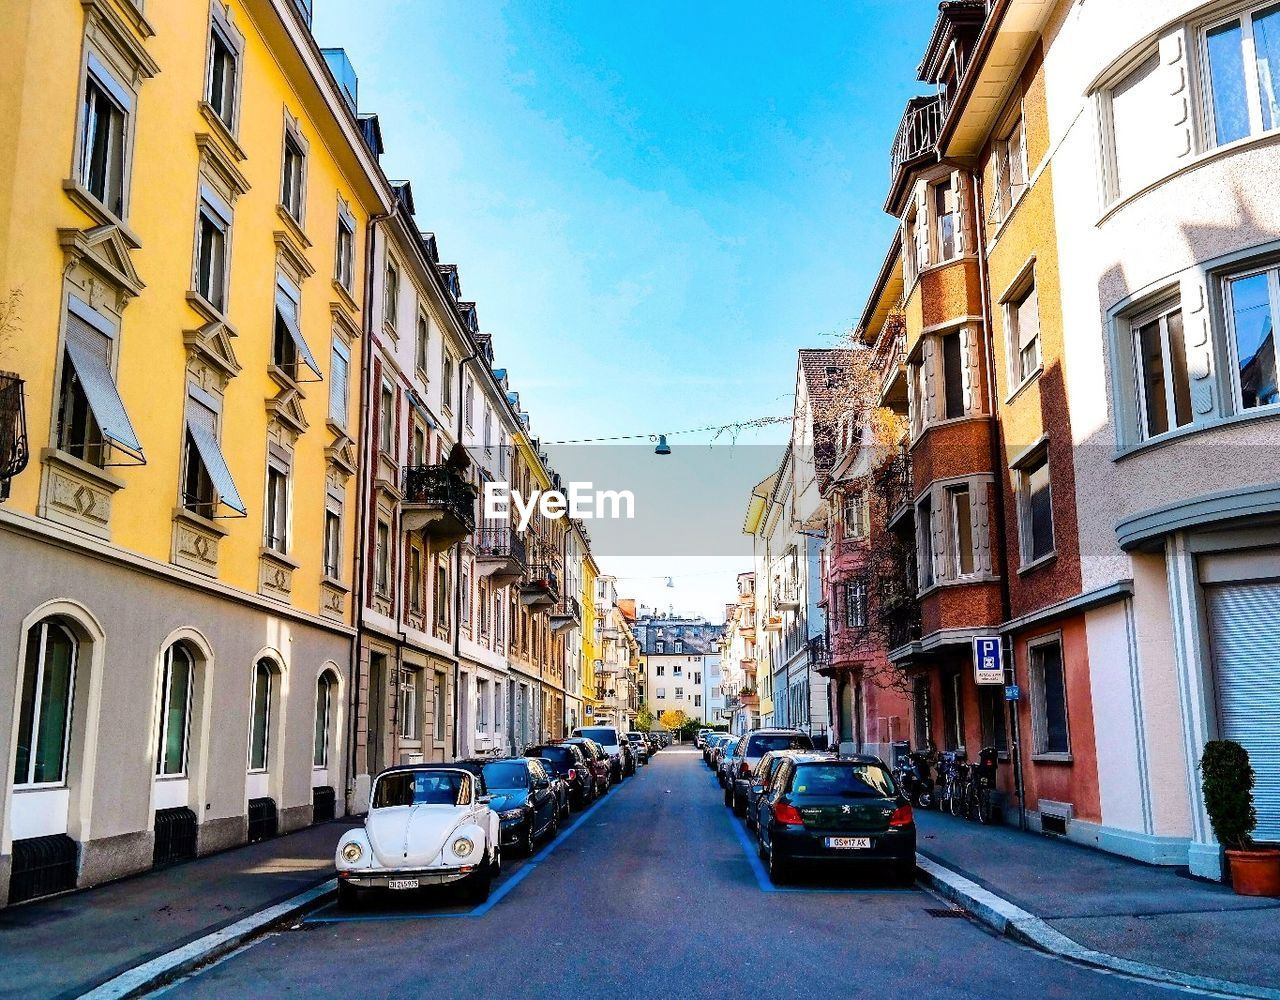 building exterior, architecture, car, built structure, street, transportation, window, city, land vehicle, mode of transport, sky, day, outdoors, road, residential building, the way forward, no people